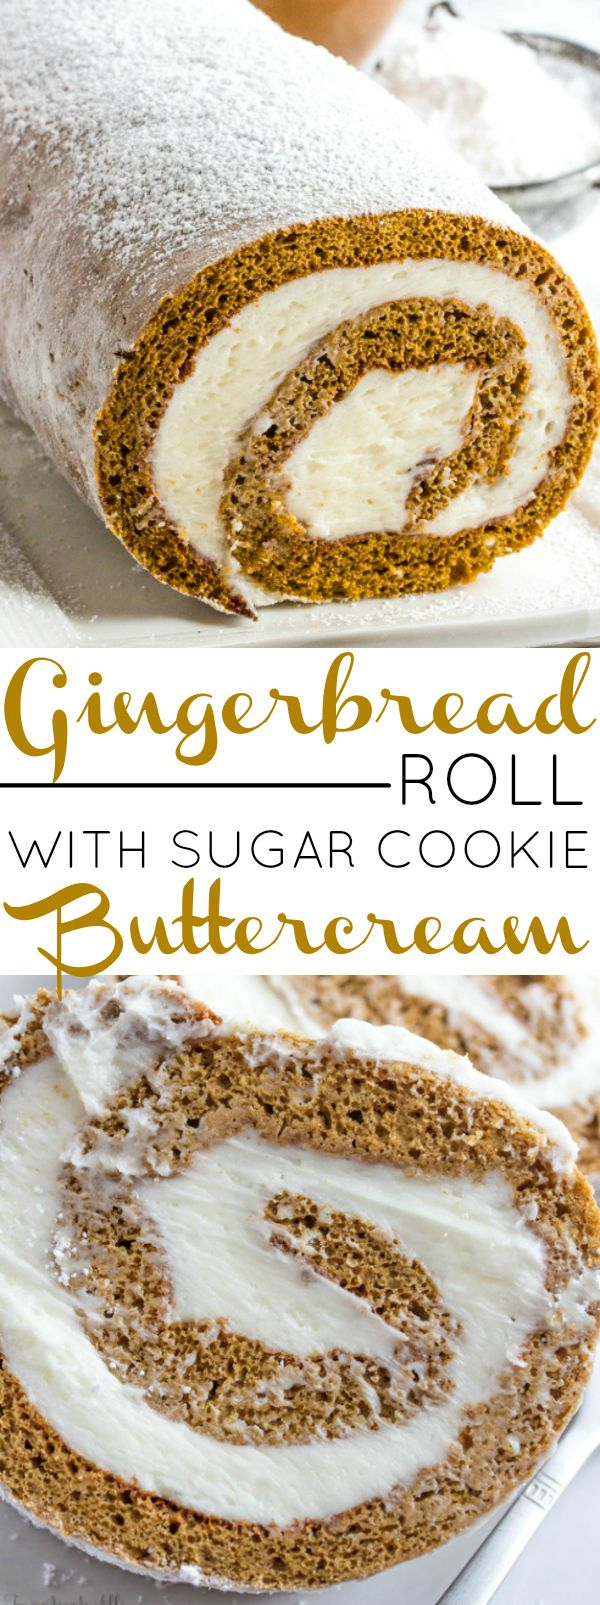 Delight in the Holiday season with this Gingerbread Roll with Sugar Cookie Buttercream. A delicious twist on a traditional treat that the whole family will enjoy. #DelightfulMoments AD @Walmart